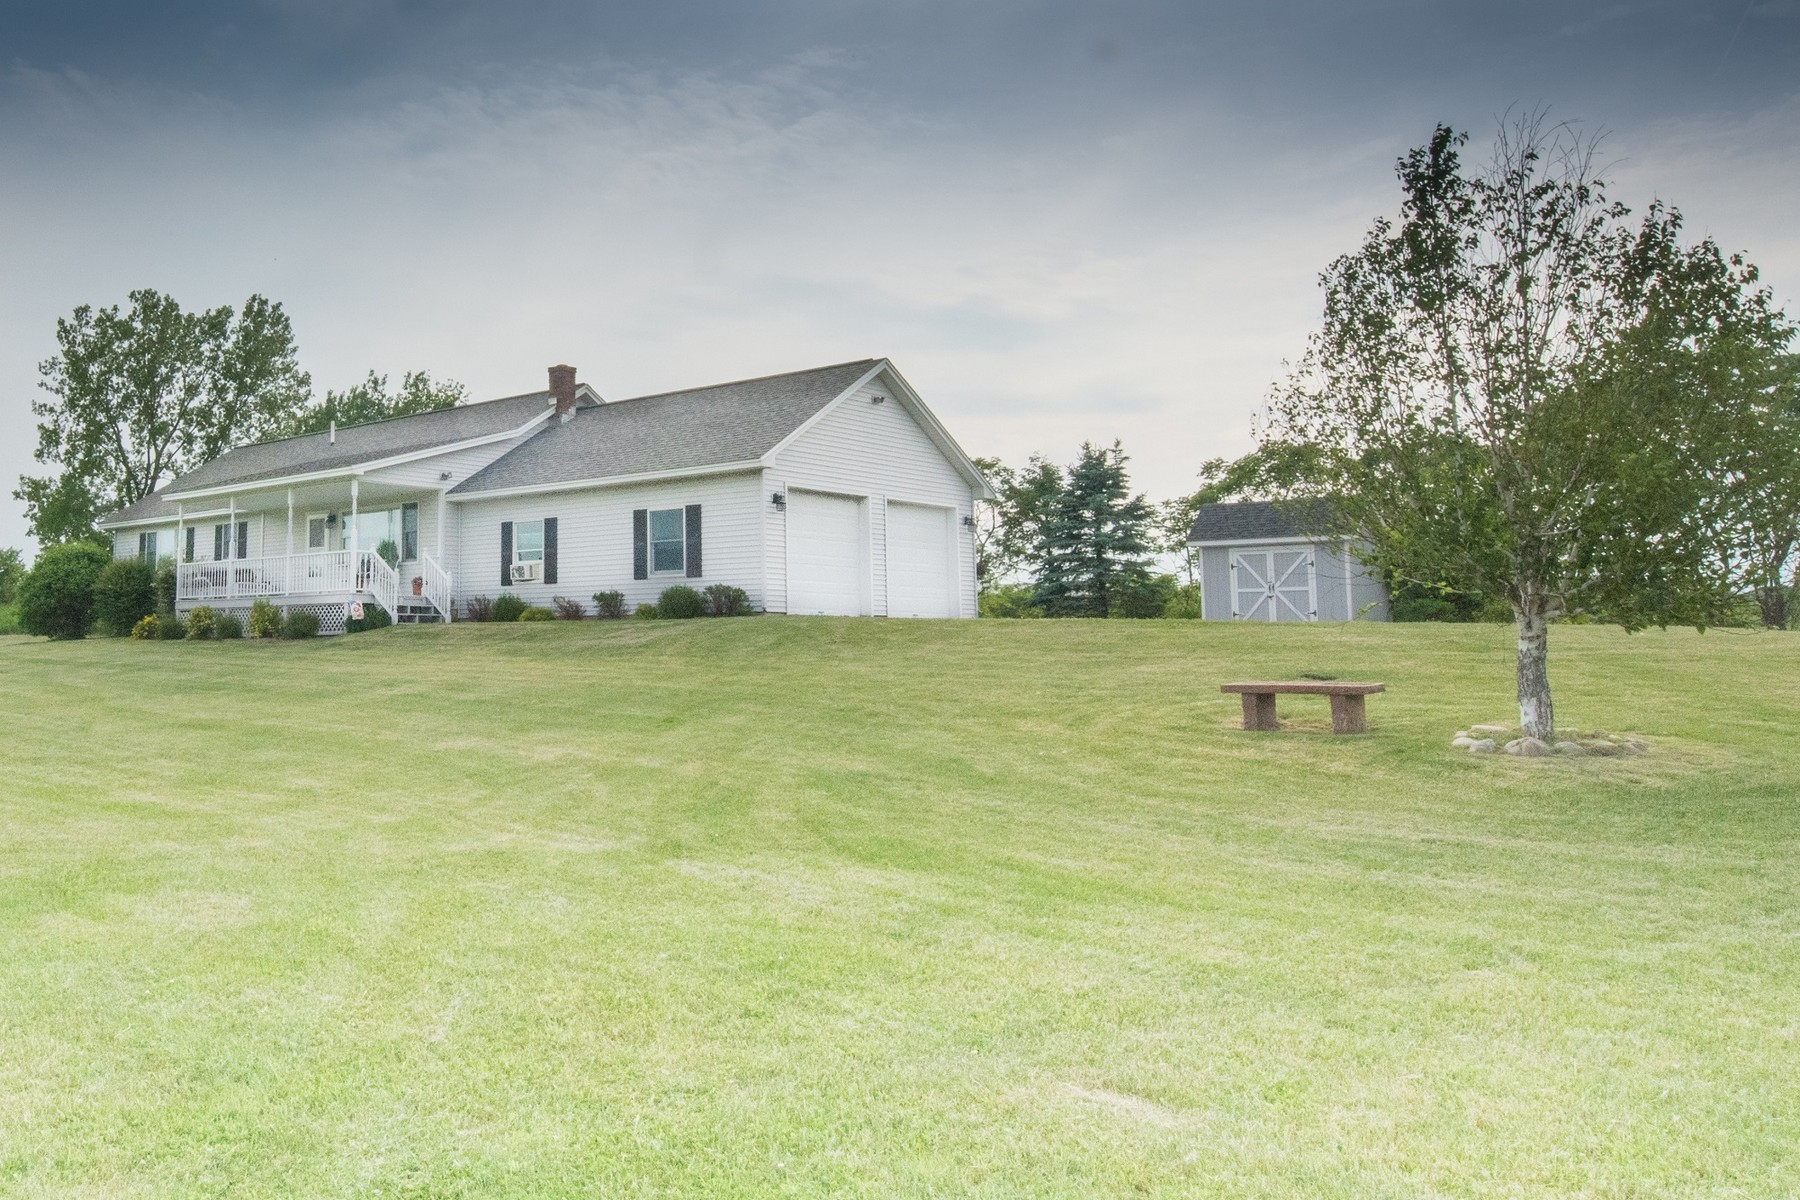 Single Family Home for Sale at Fly-In Home in Beautiful Washington County 5290 State Route 40 Argyle, New York 12809 United States